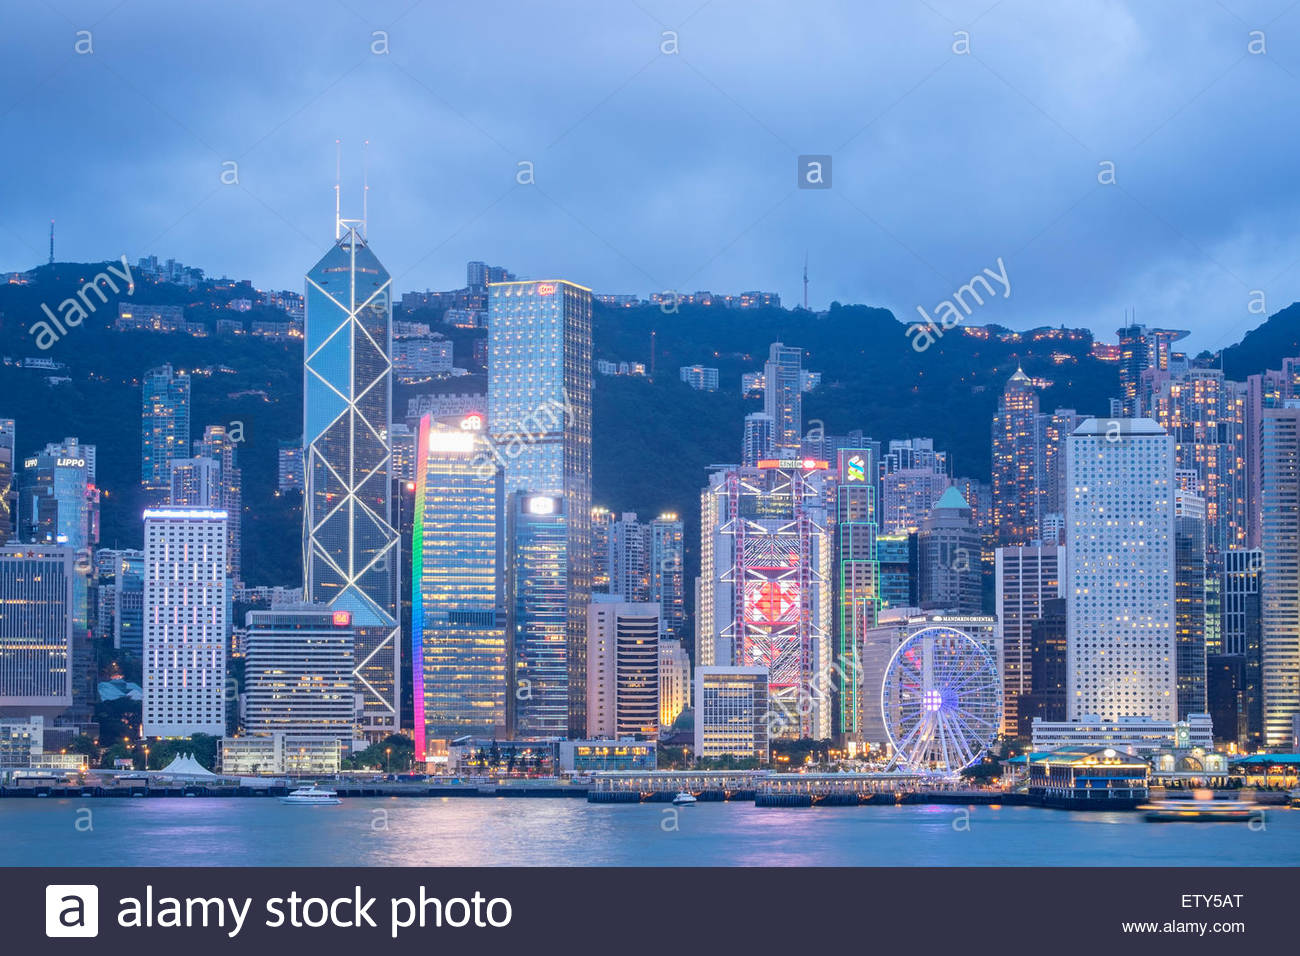 Dusk skyline of skyscrapers in Hong Kong from Kowloon on a clear day - Stock Image